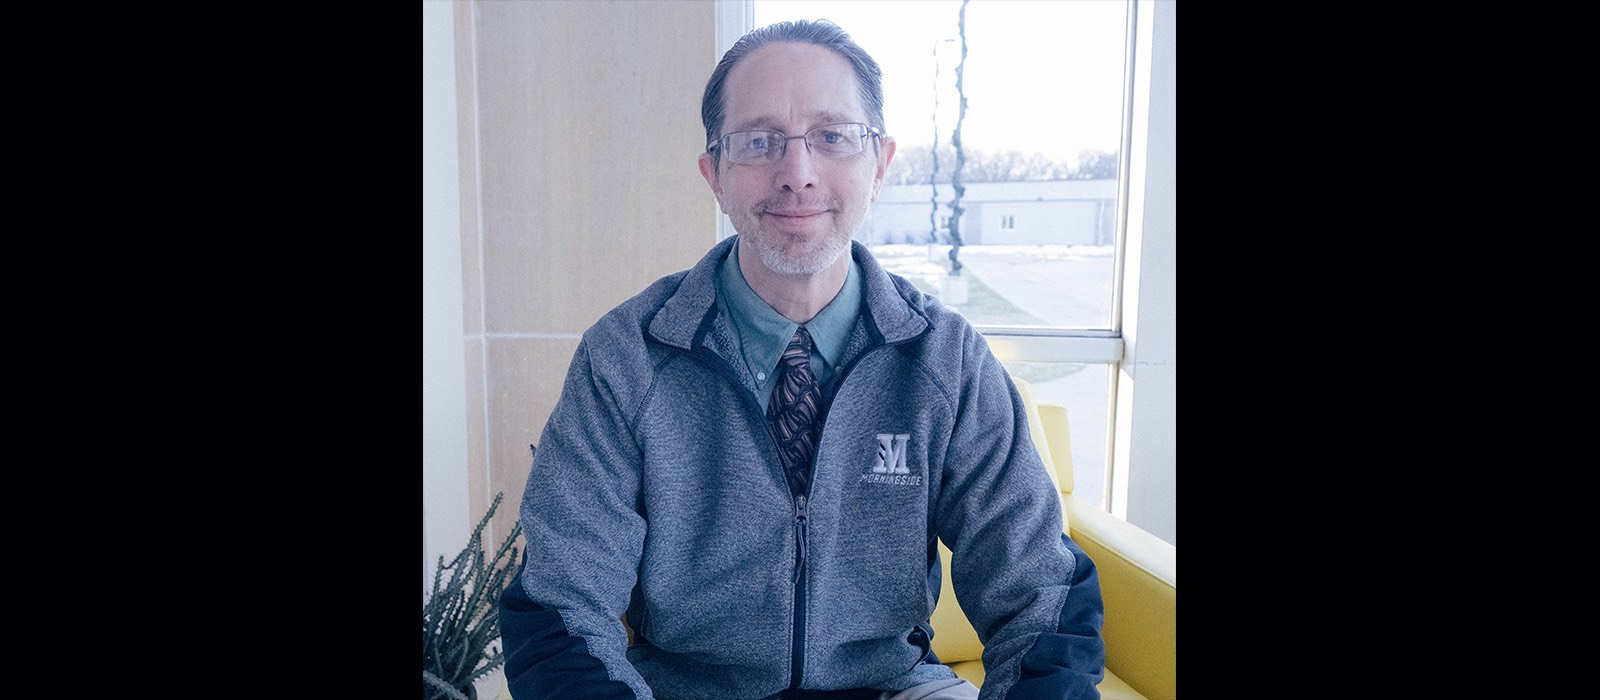 Morningside history professor Greg Guelcher